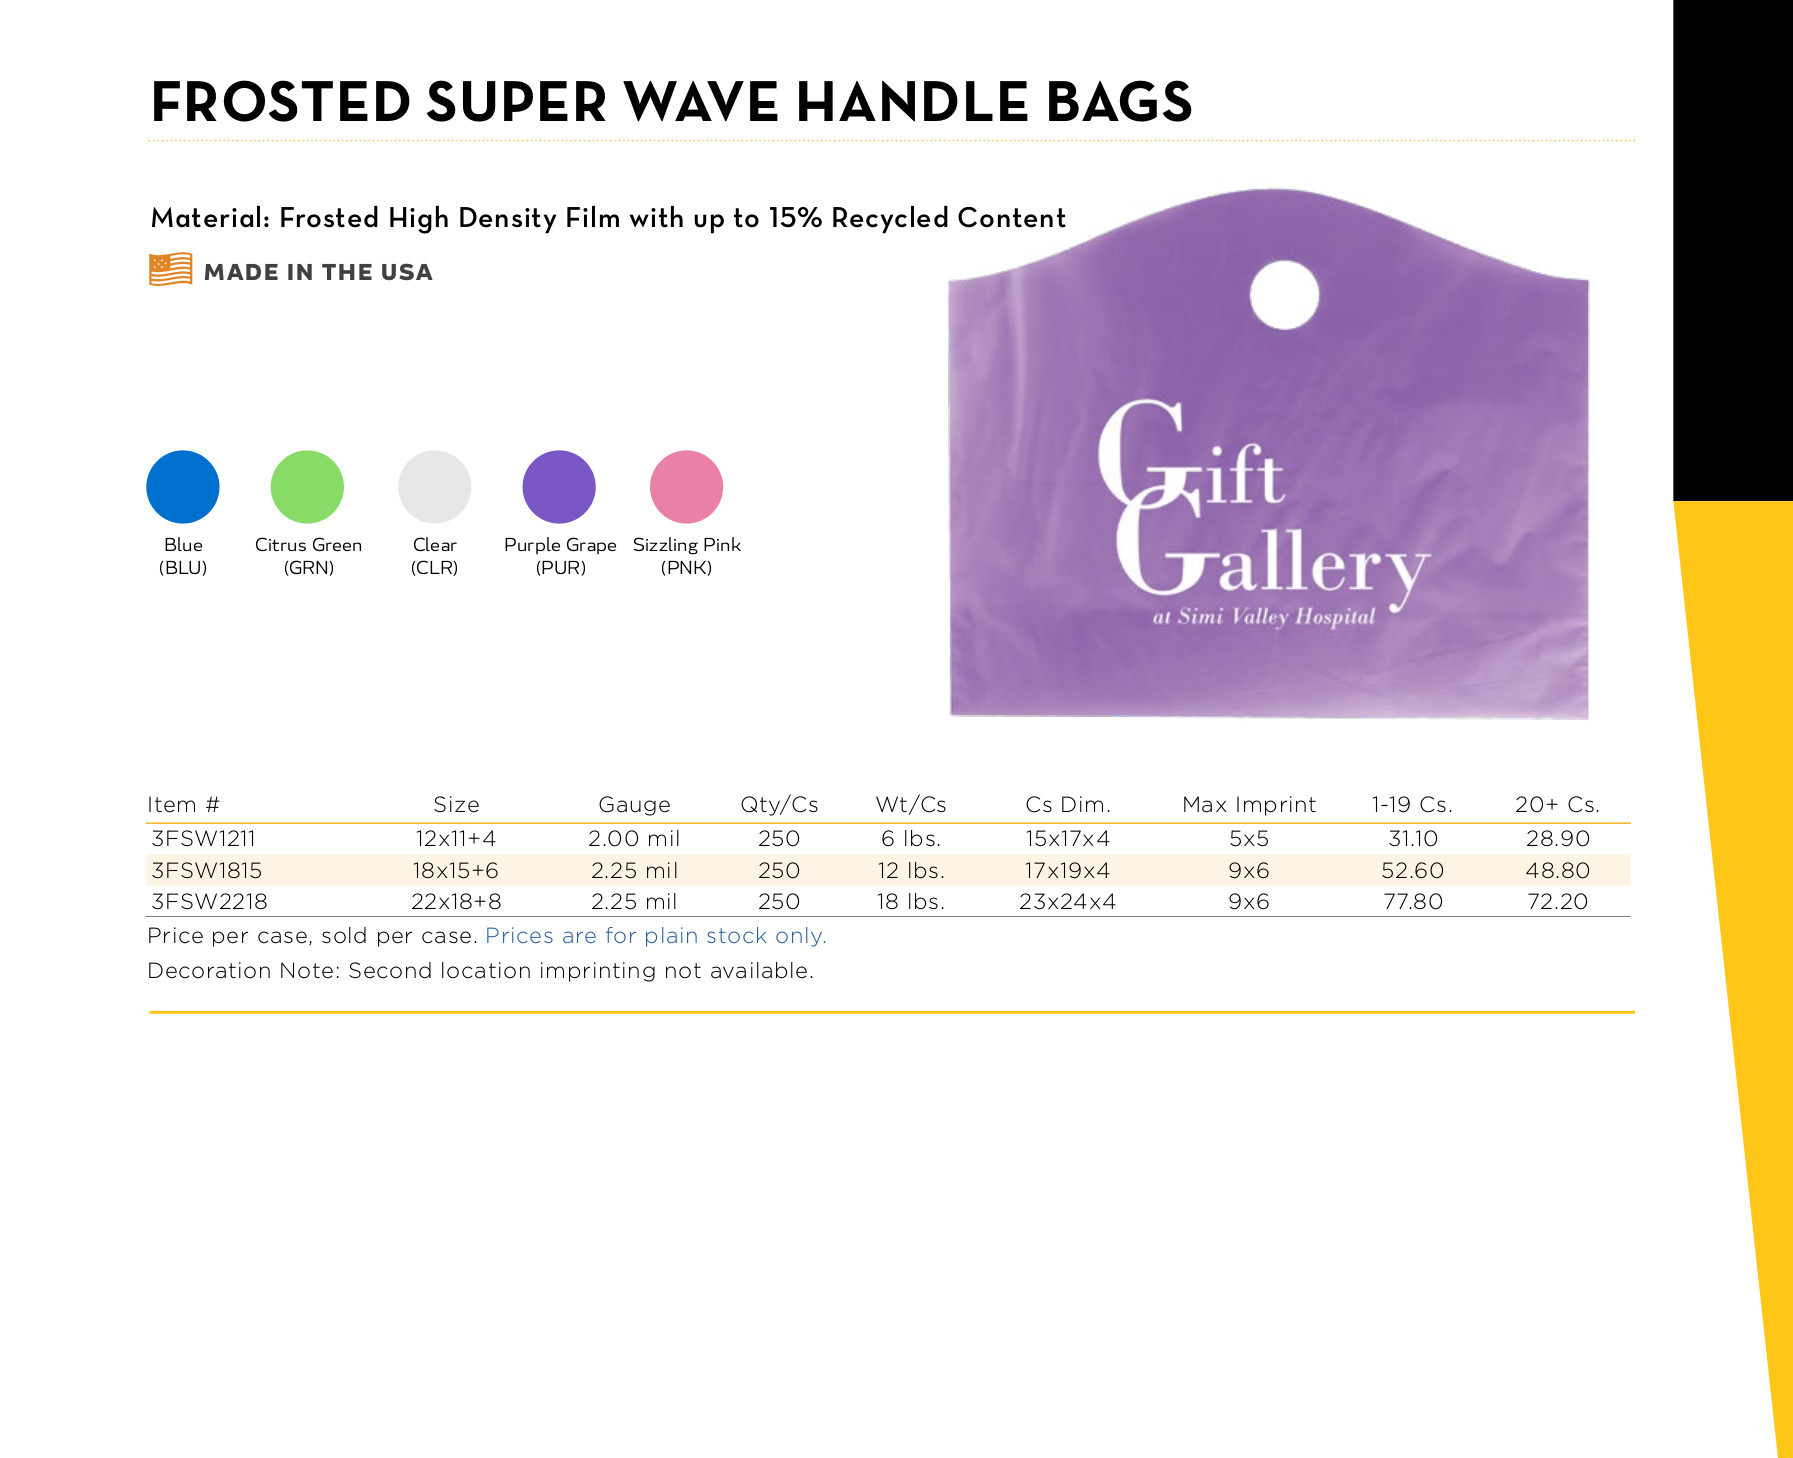 Frosted Super Wave Bags